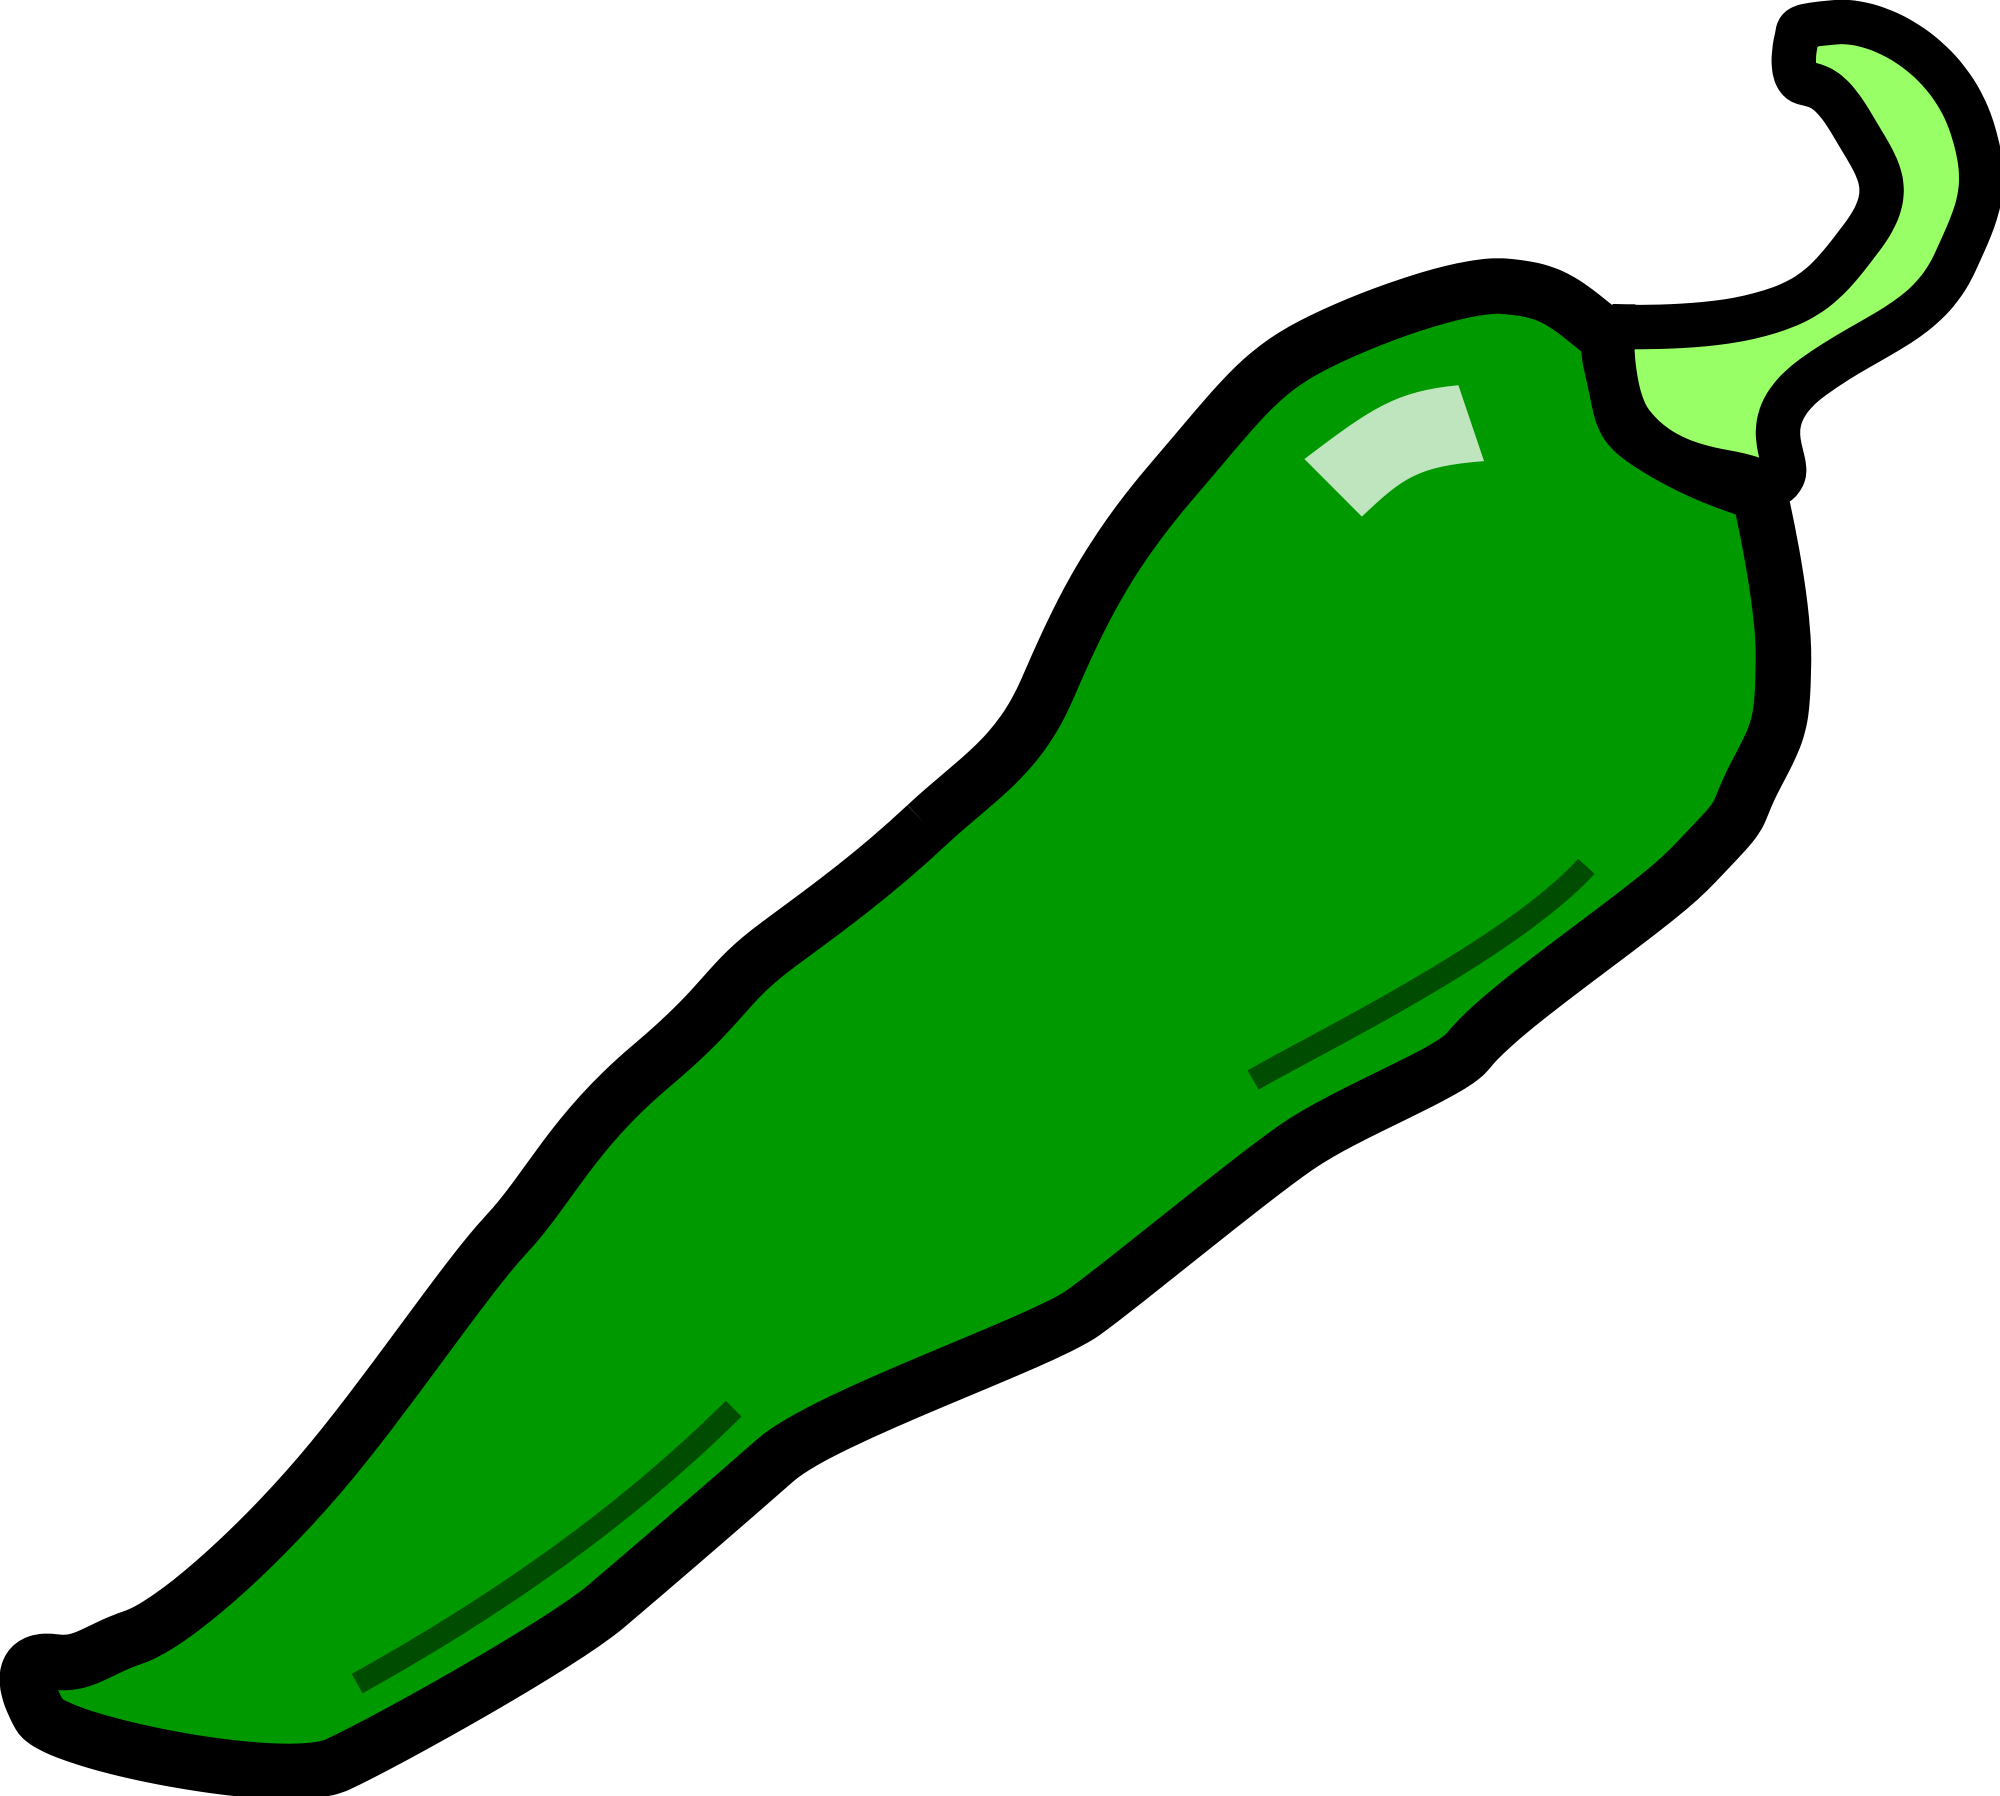 clip art free download Free on dumielauxepices net. Chili clipart chili bean.